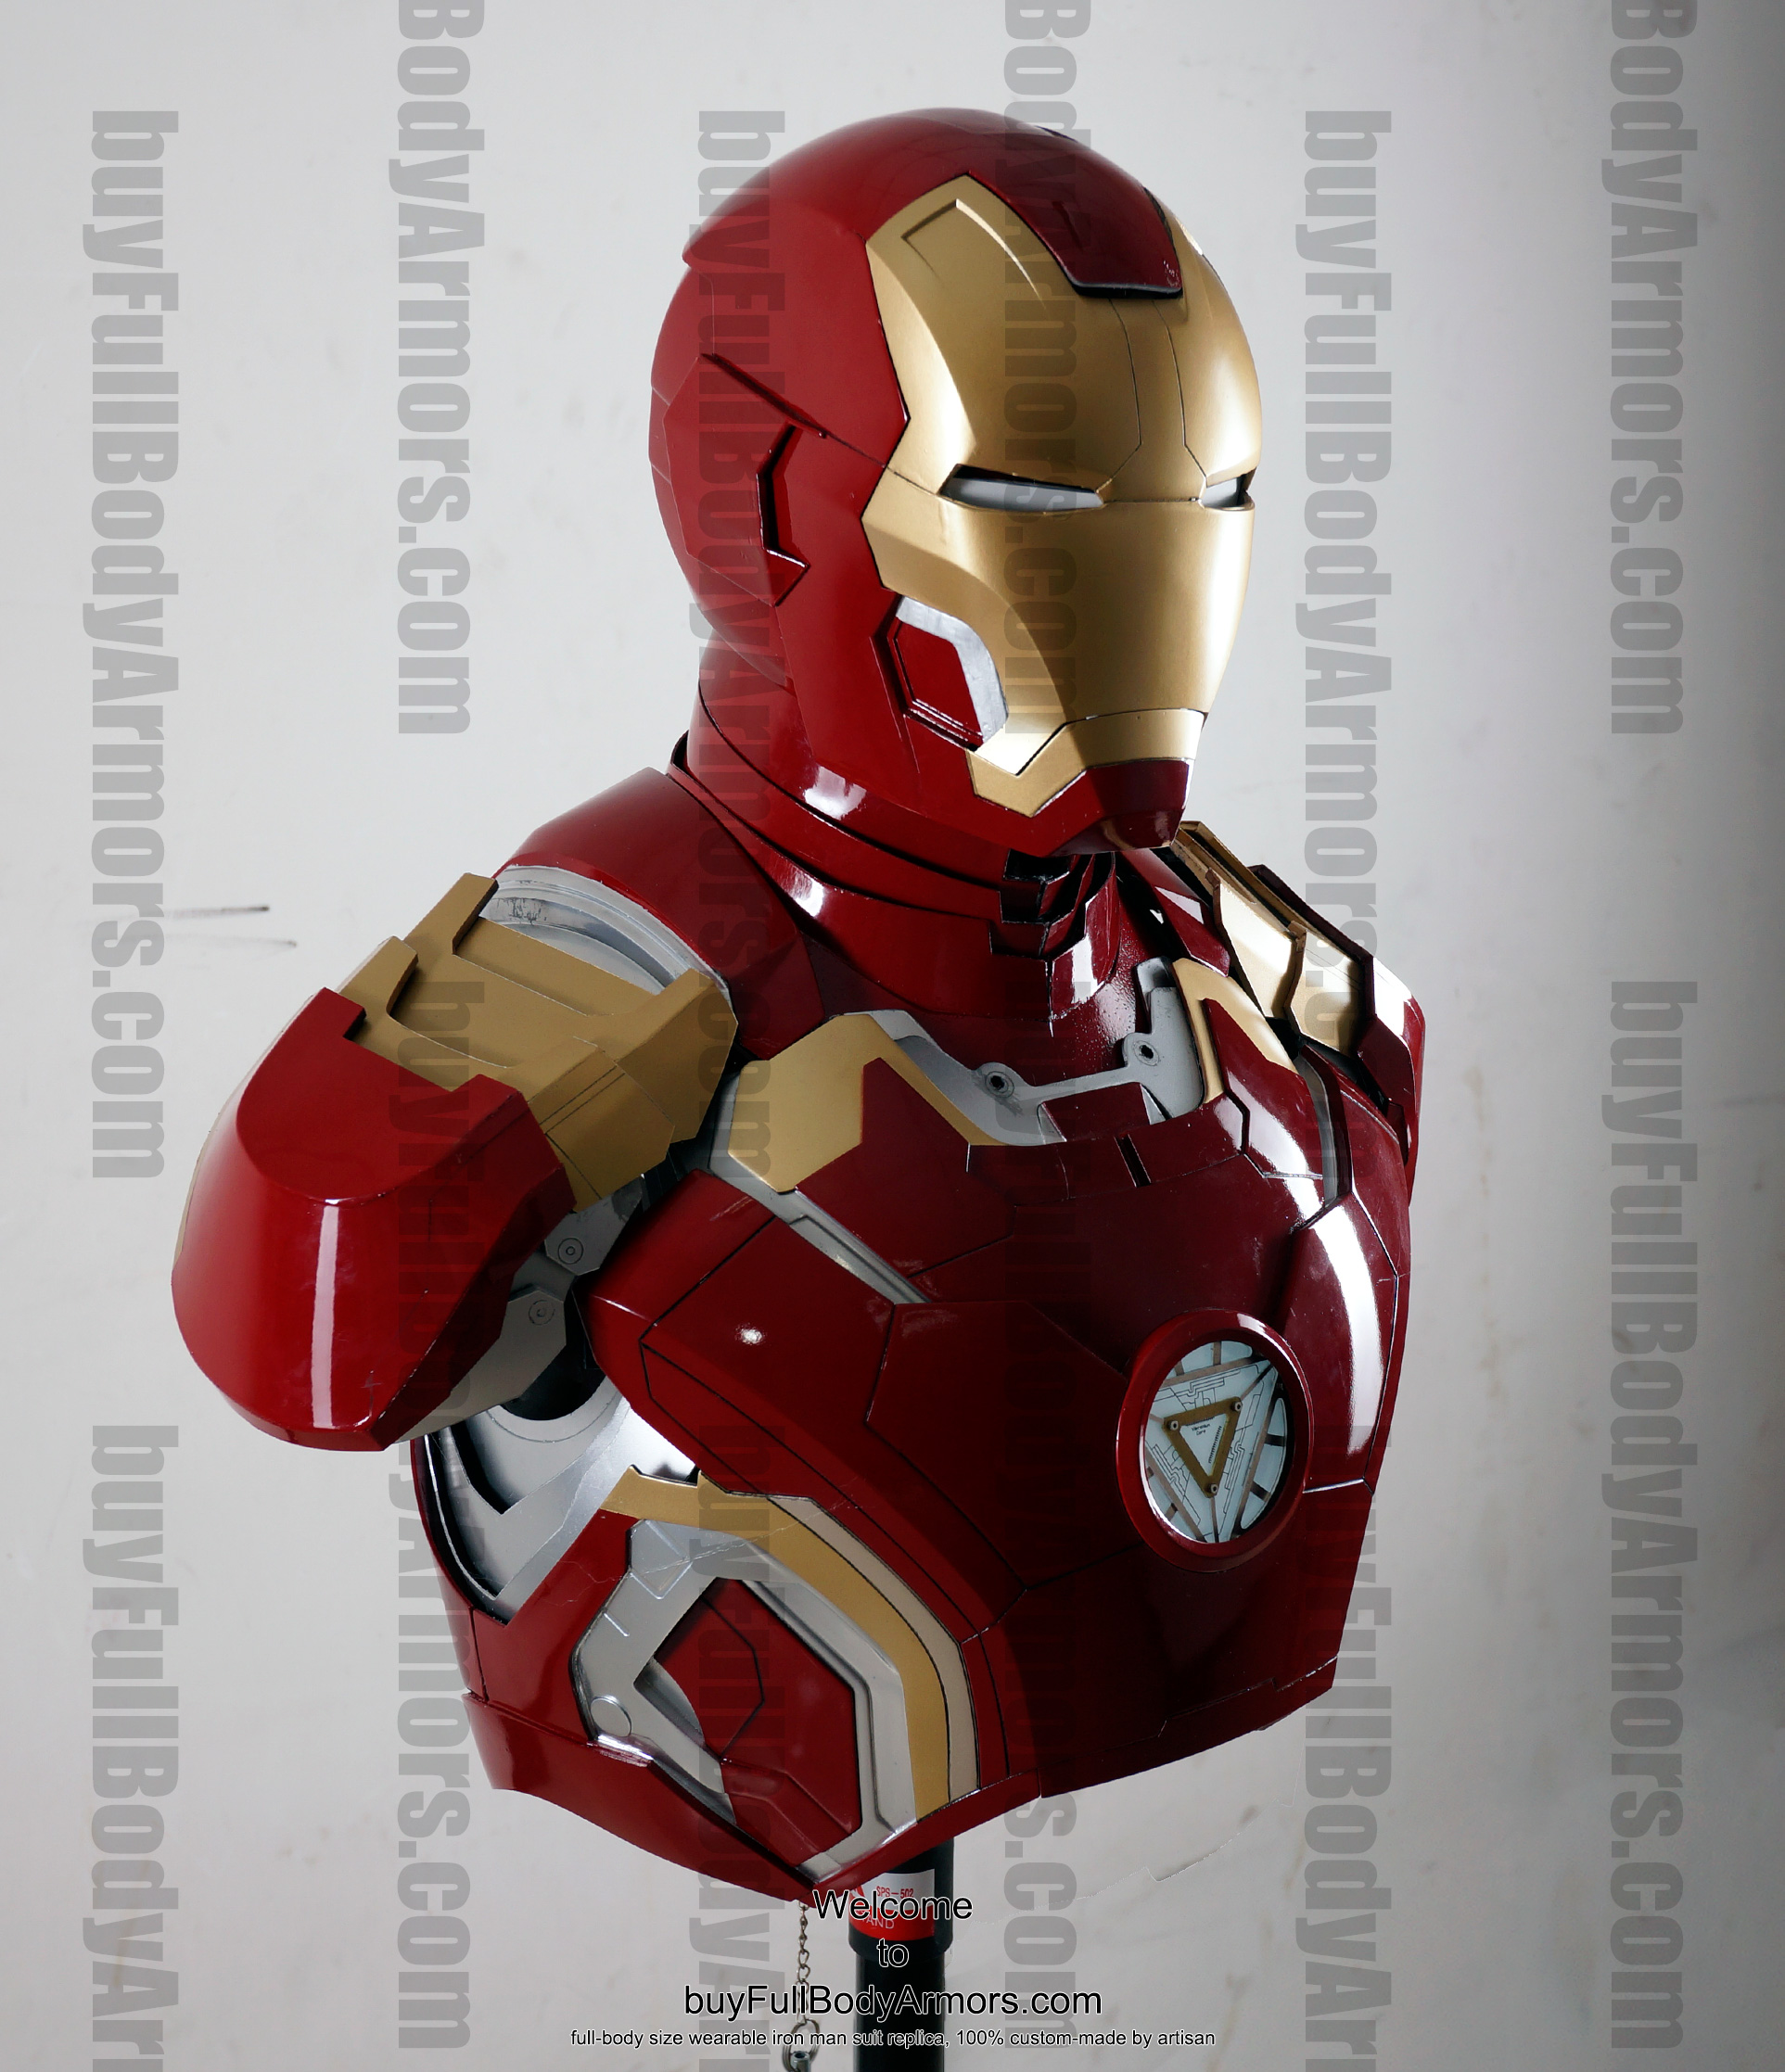 buy iron man suit halo master chief armor batman costume star wars armor dslr photos of the. Black Bedroom Furniture Sets. Home Design Ideas